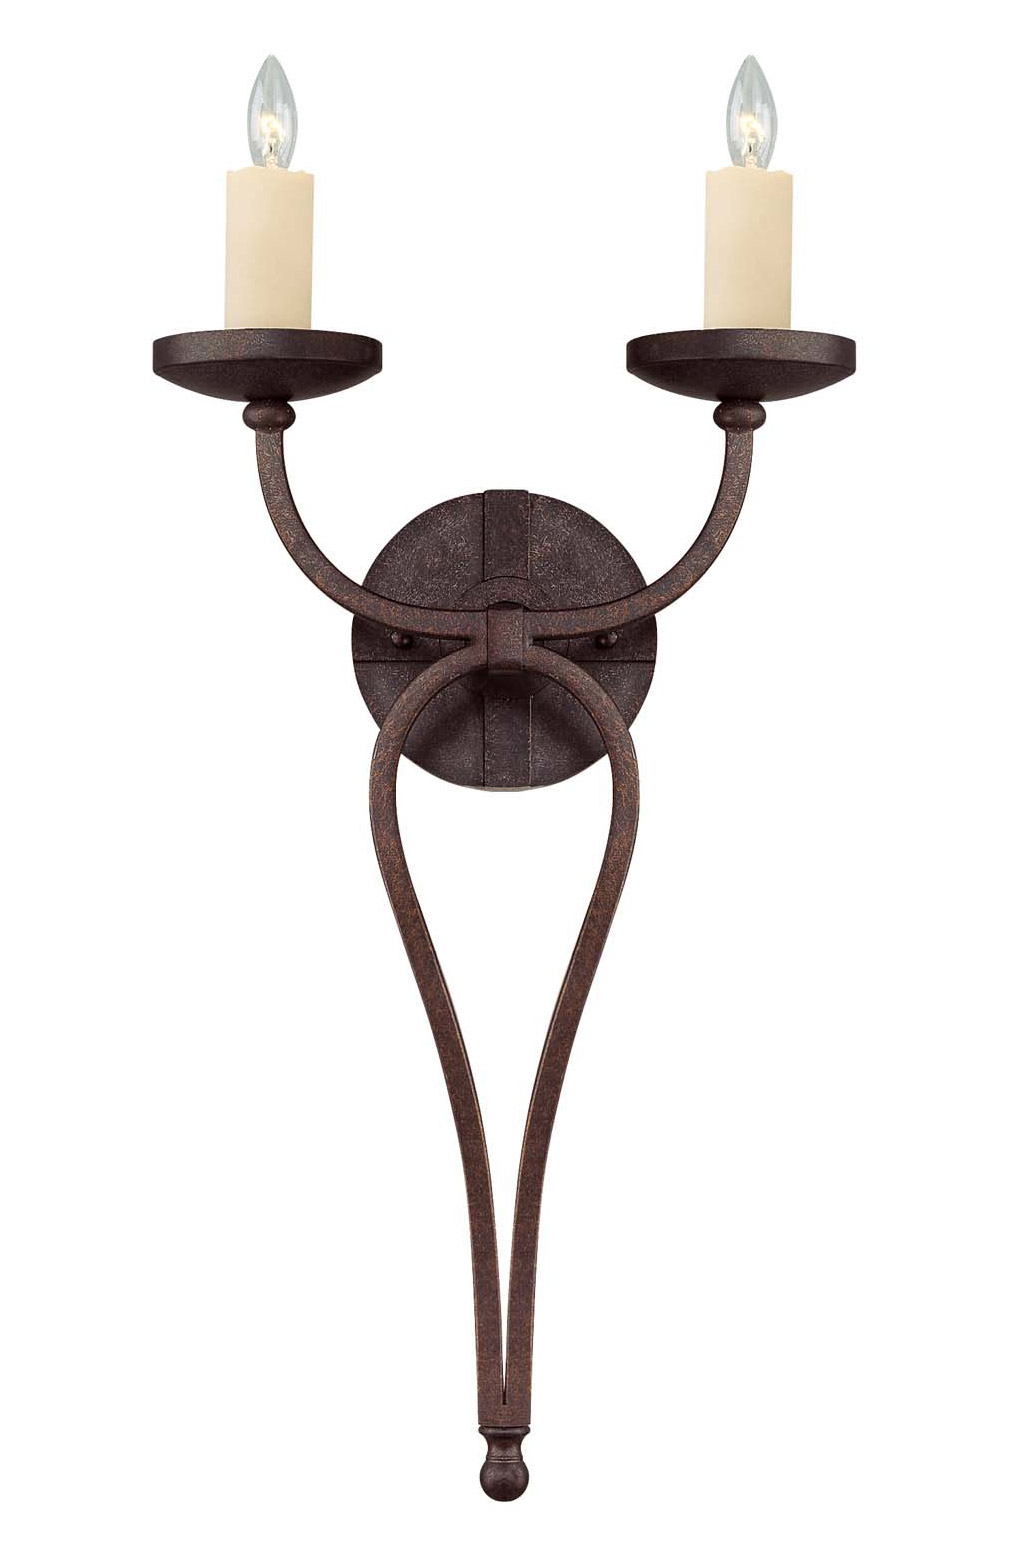 Savoy House Elba Two Light Wall Sconce - Two light bathroom sconce